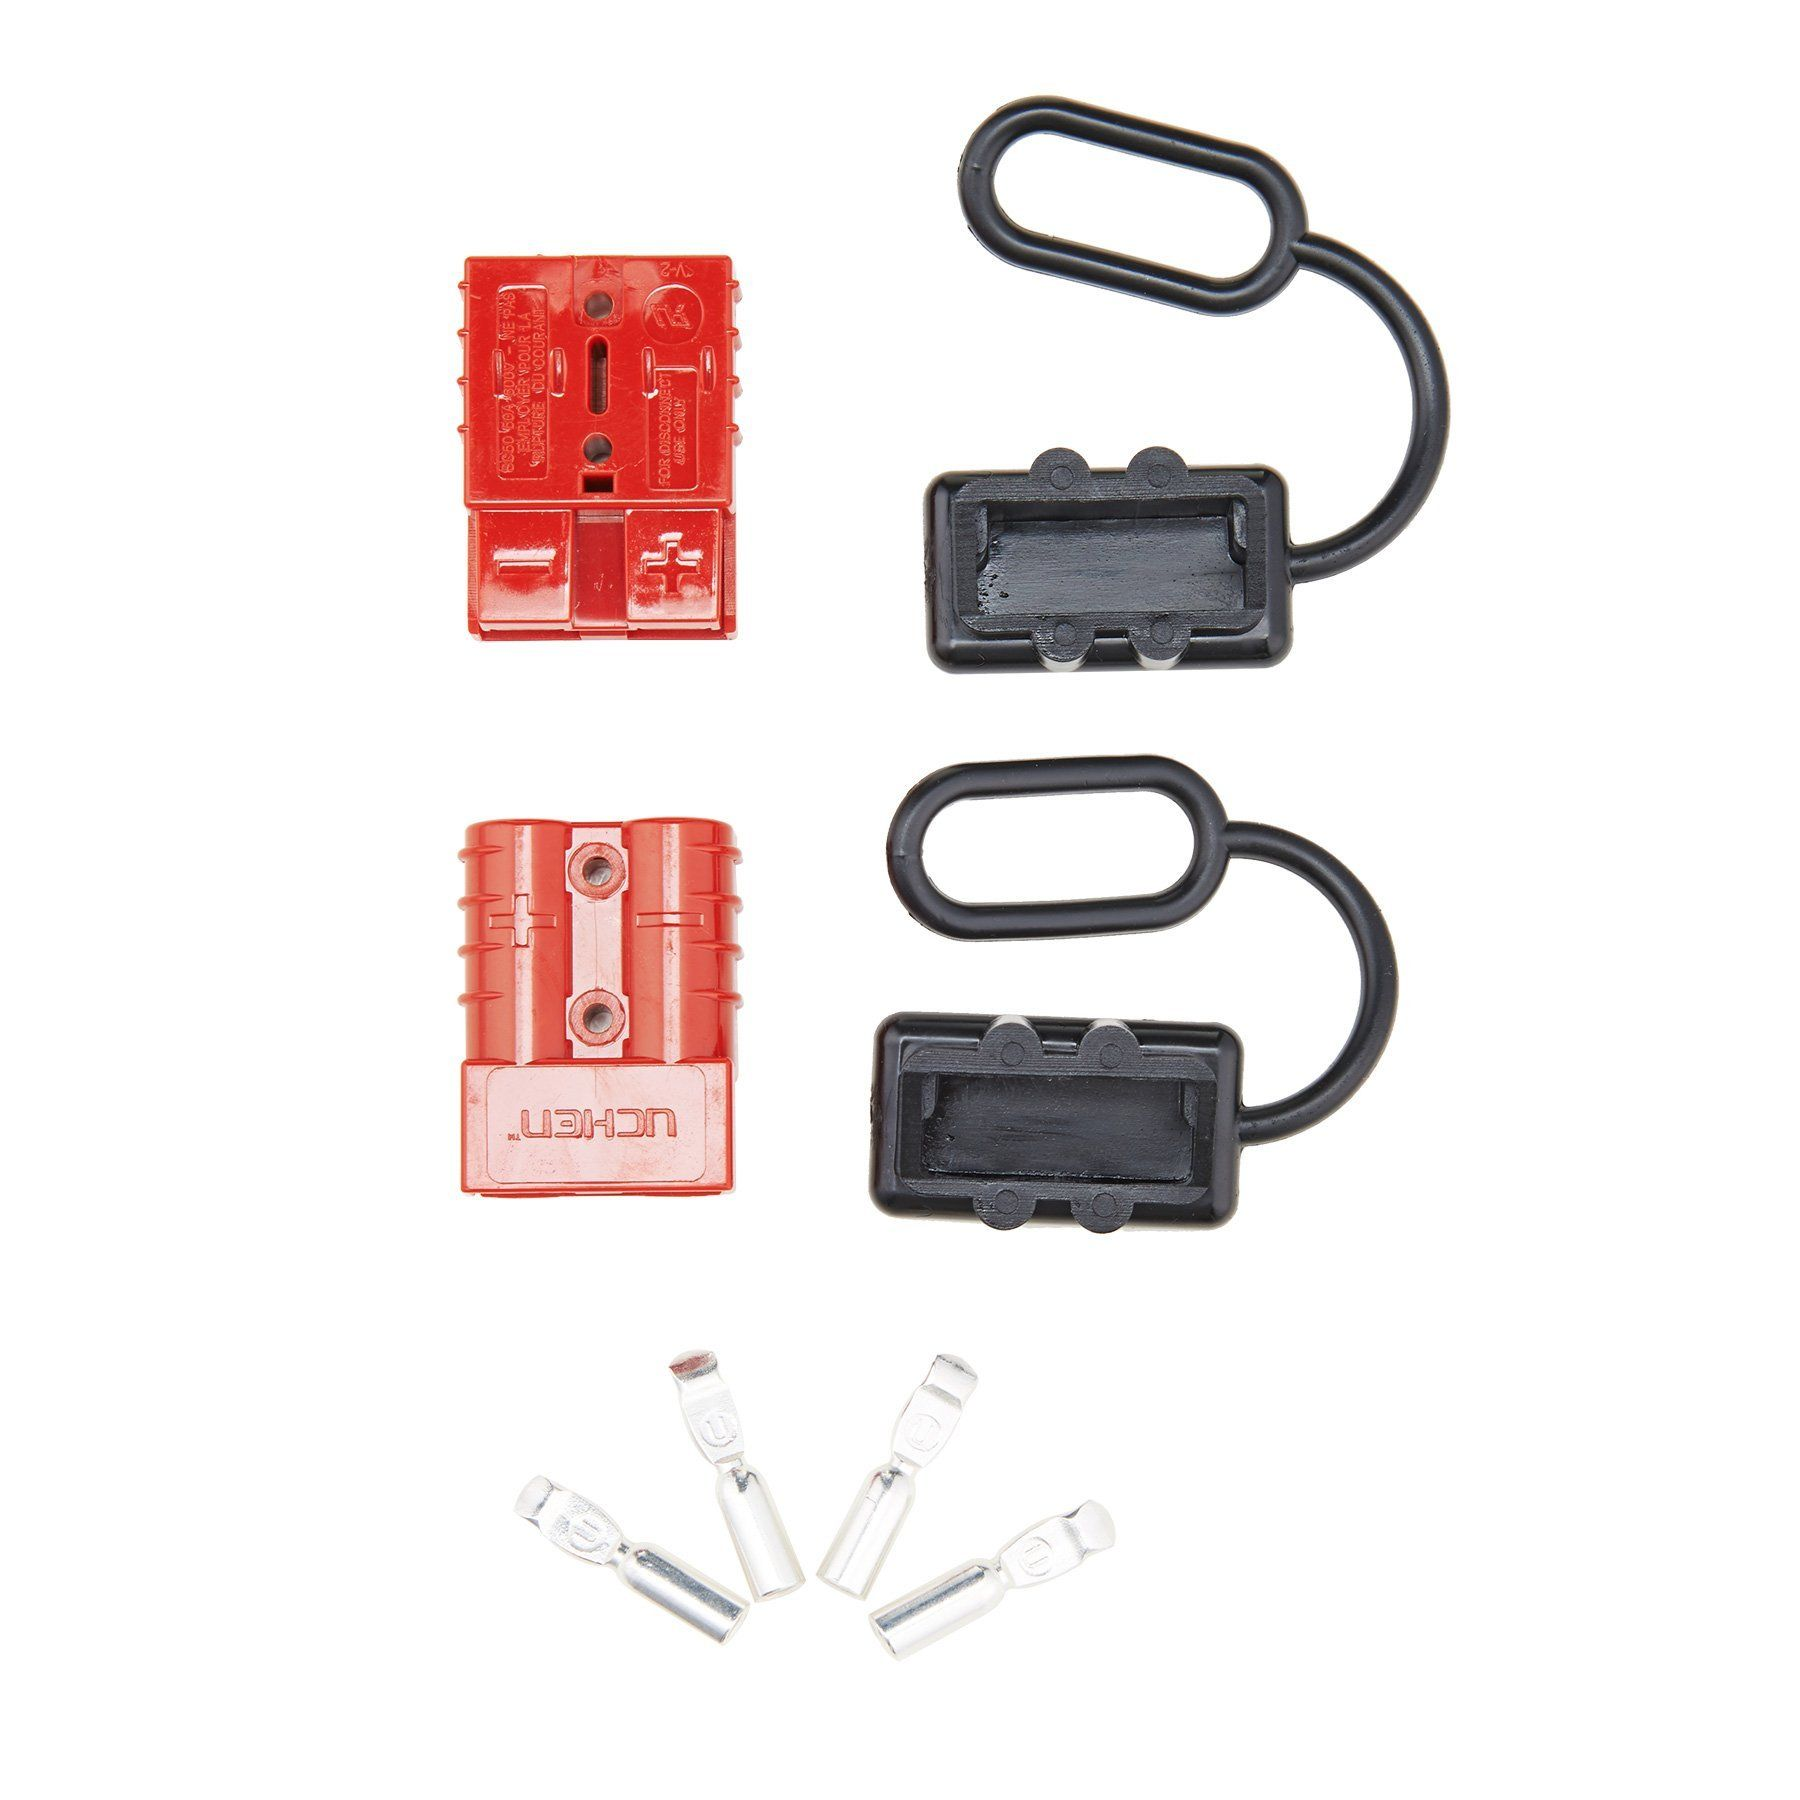 small resolution of orion motor tech 68 gauge battery quick connect disconnect wire harness plug kit for recovery